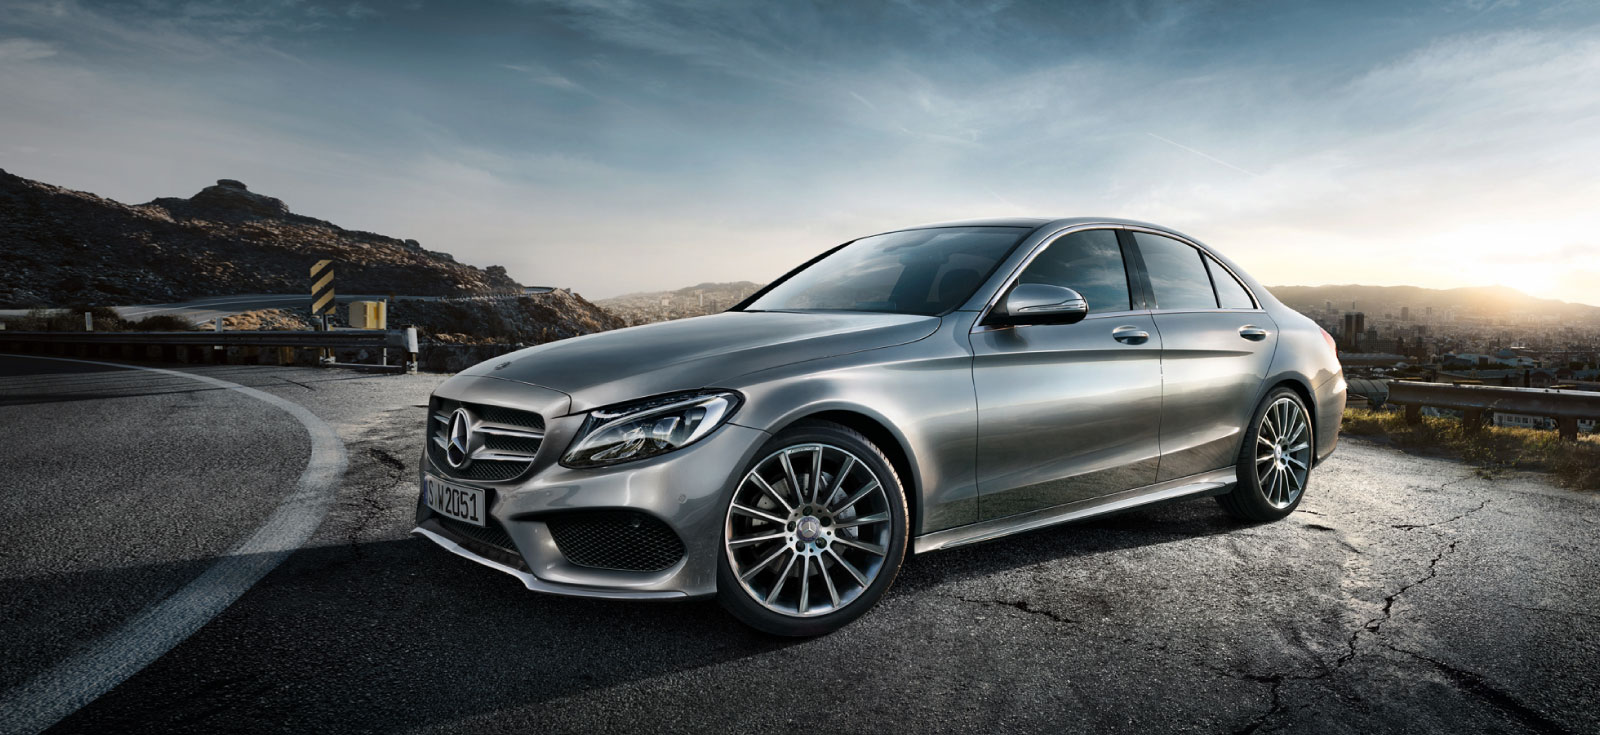 Mercedes benz c class deals new mercedes benz c class for Mercedes benz c class offers